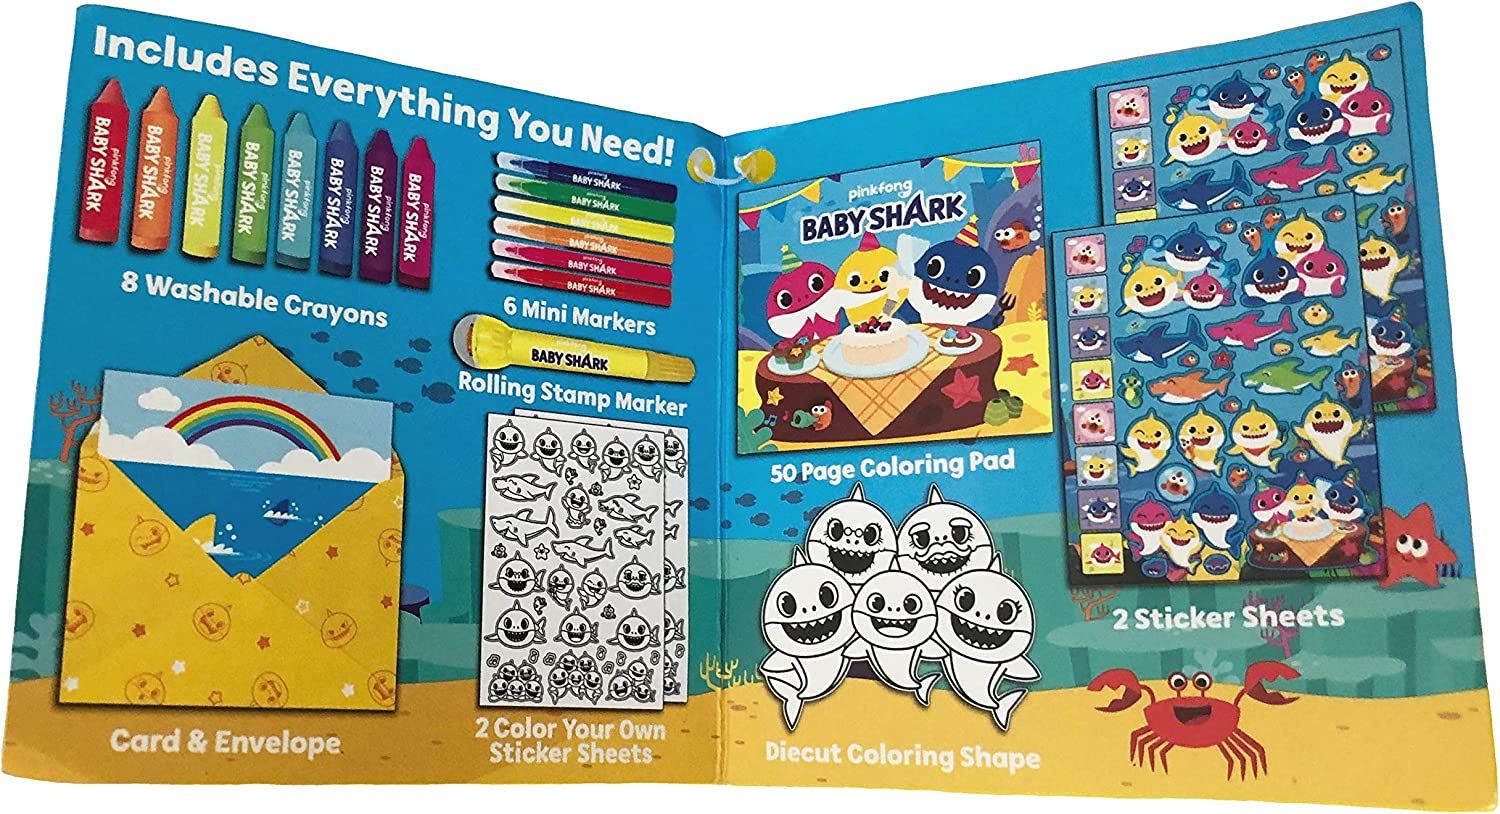 Baby Shark Coloring Case Kit Coloring Pad with Mini Markers Crayons and Sticker Sheets